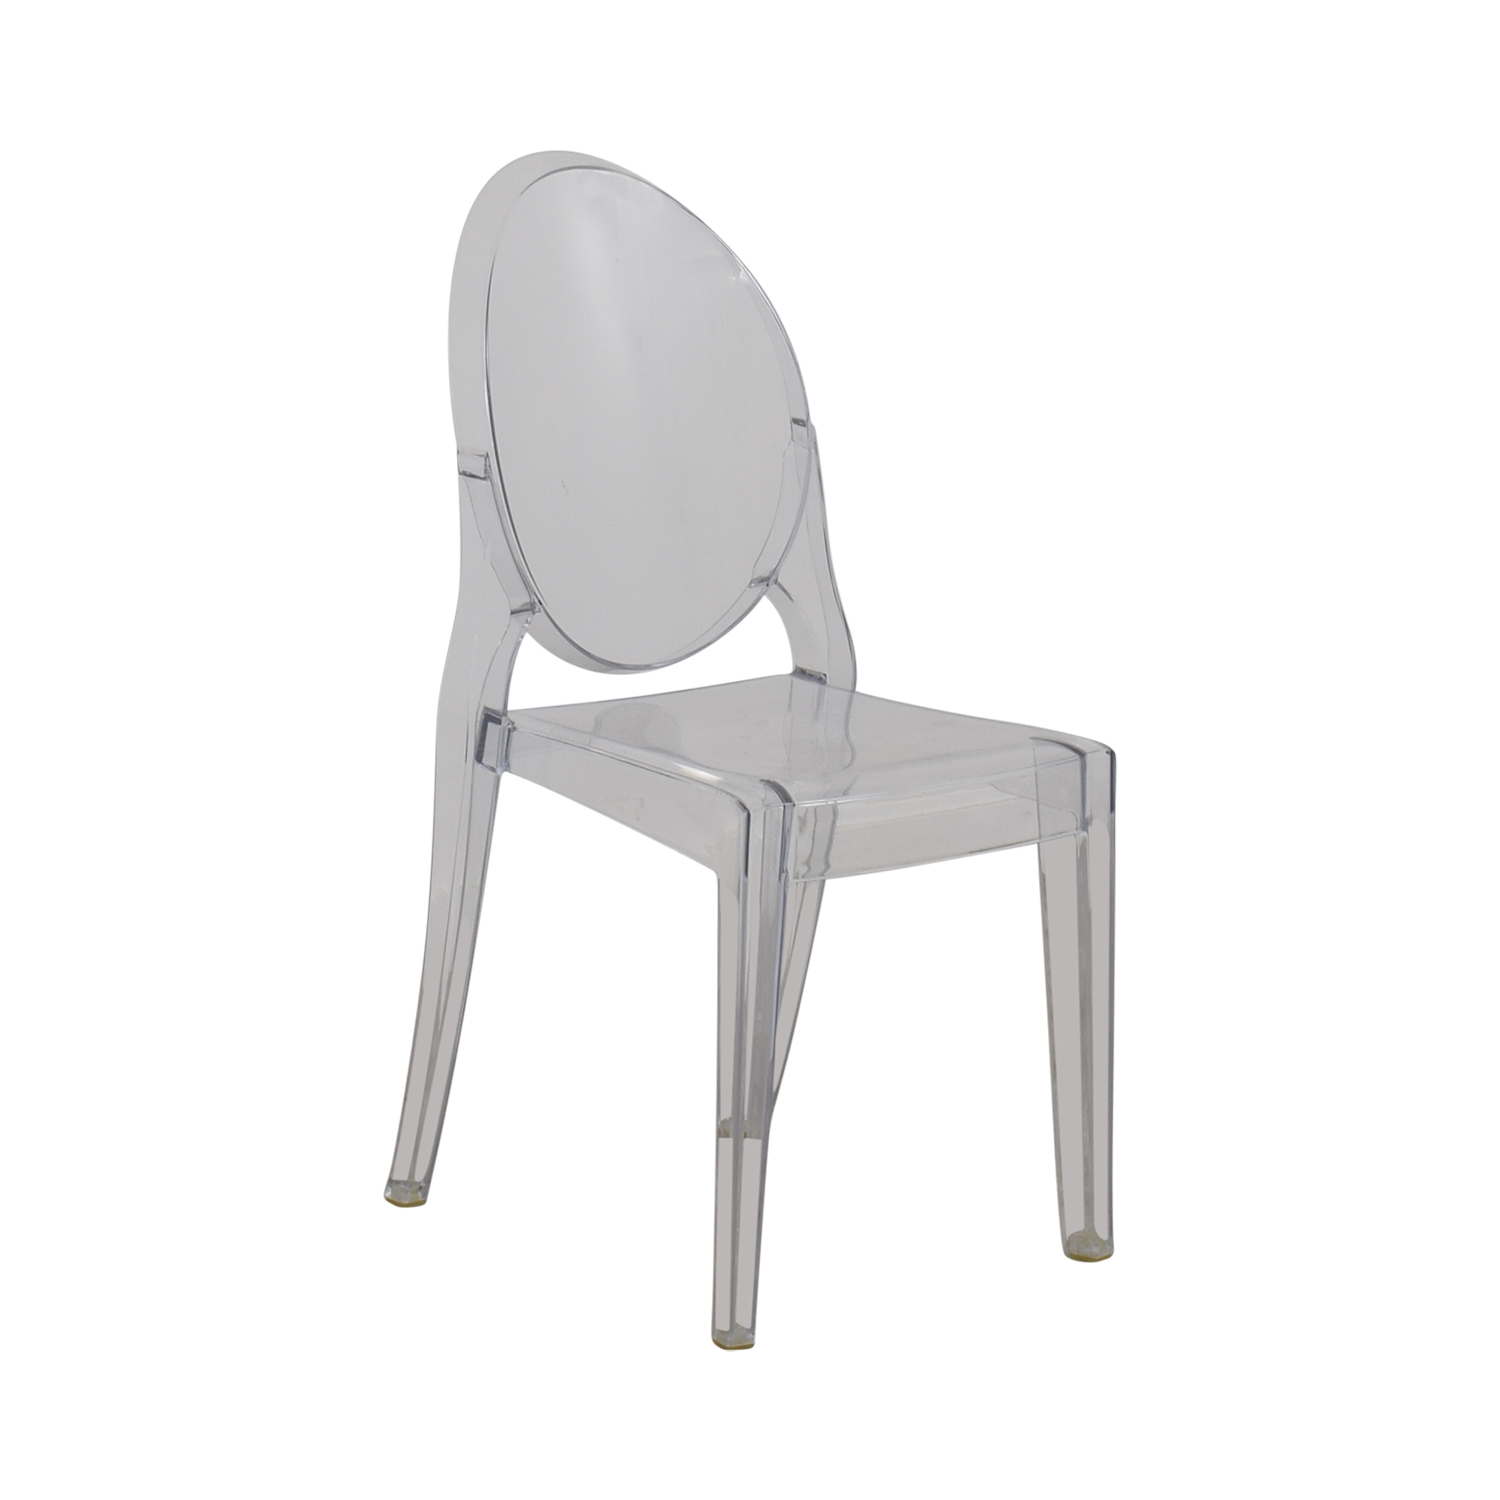 ABC Home ABC Home Kartell Victoria Ghost Chair on sale